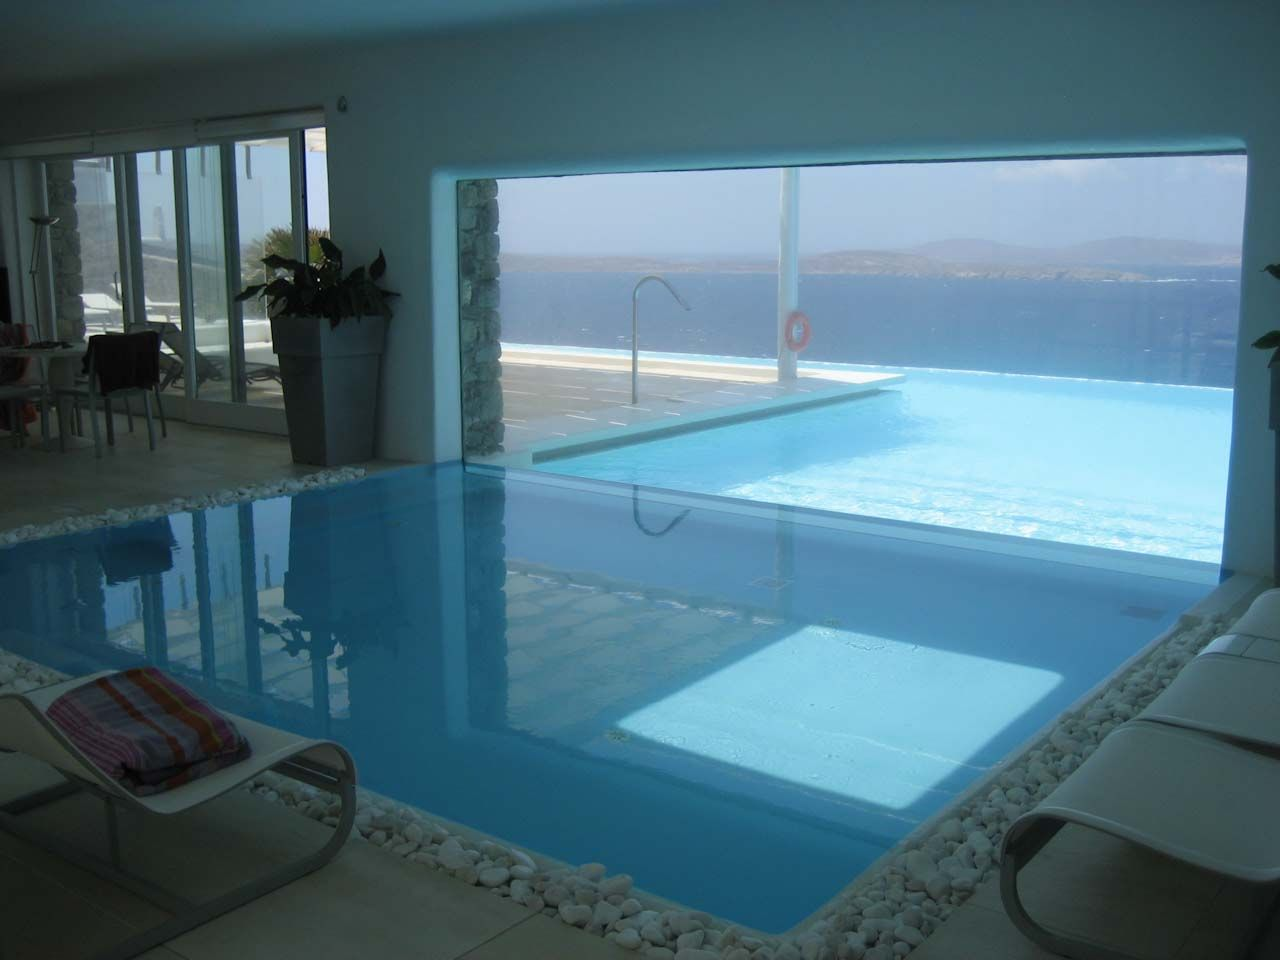 Outdoor House Pools modern swimming pool in house#35 contemporary pool houses - oghhk